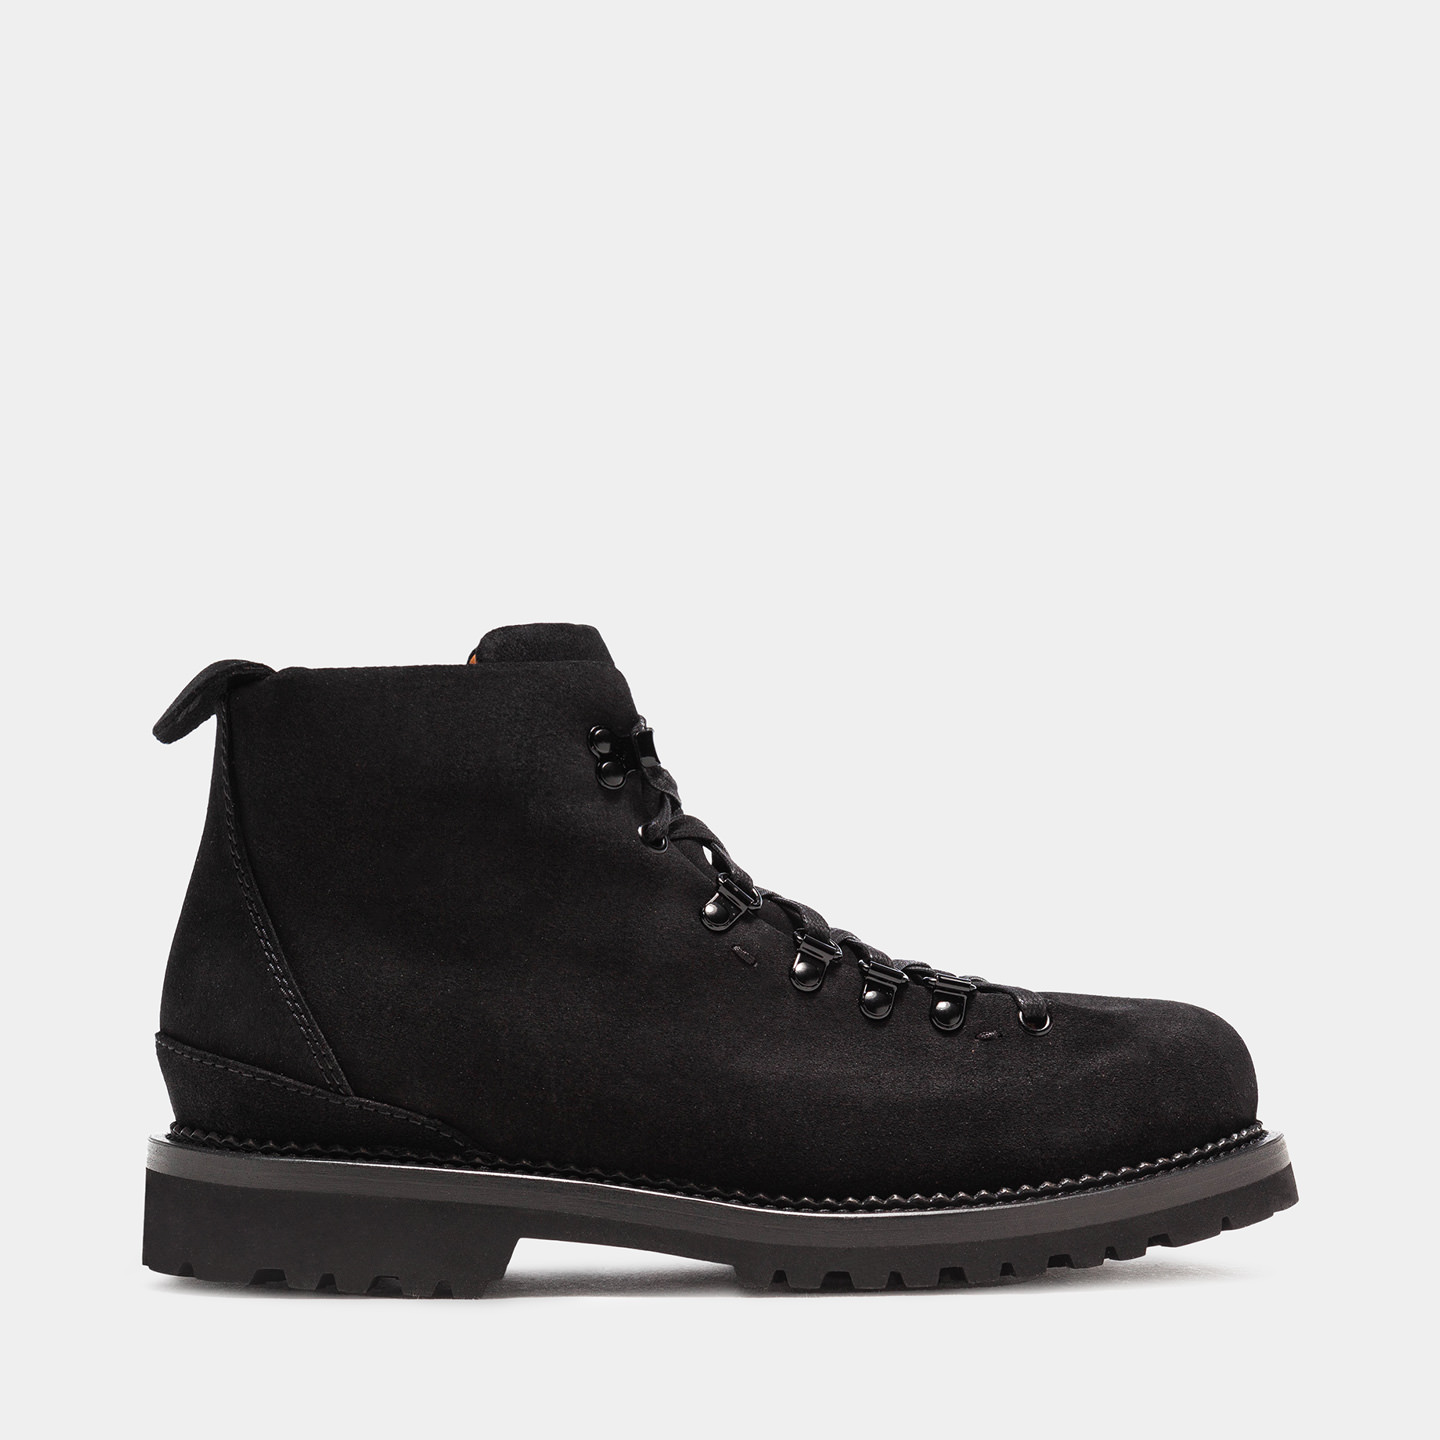 BUTTERO: CANALONE HIKING BOOTS IN BLACK SUEDE